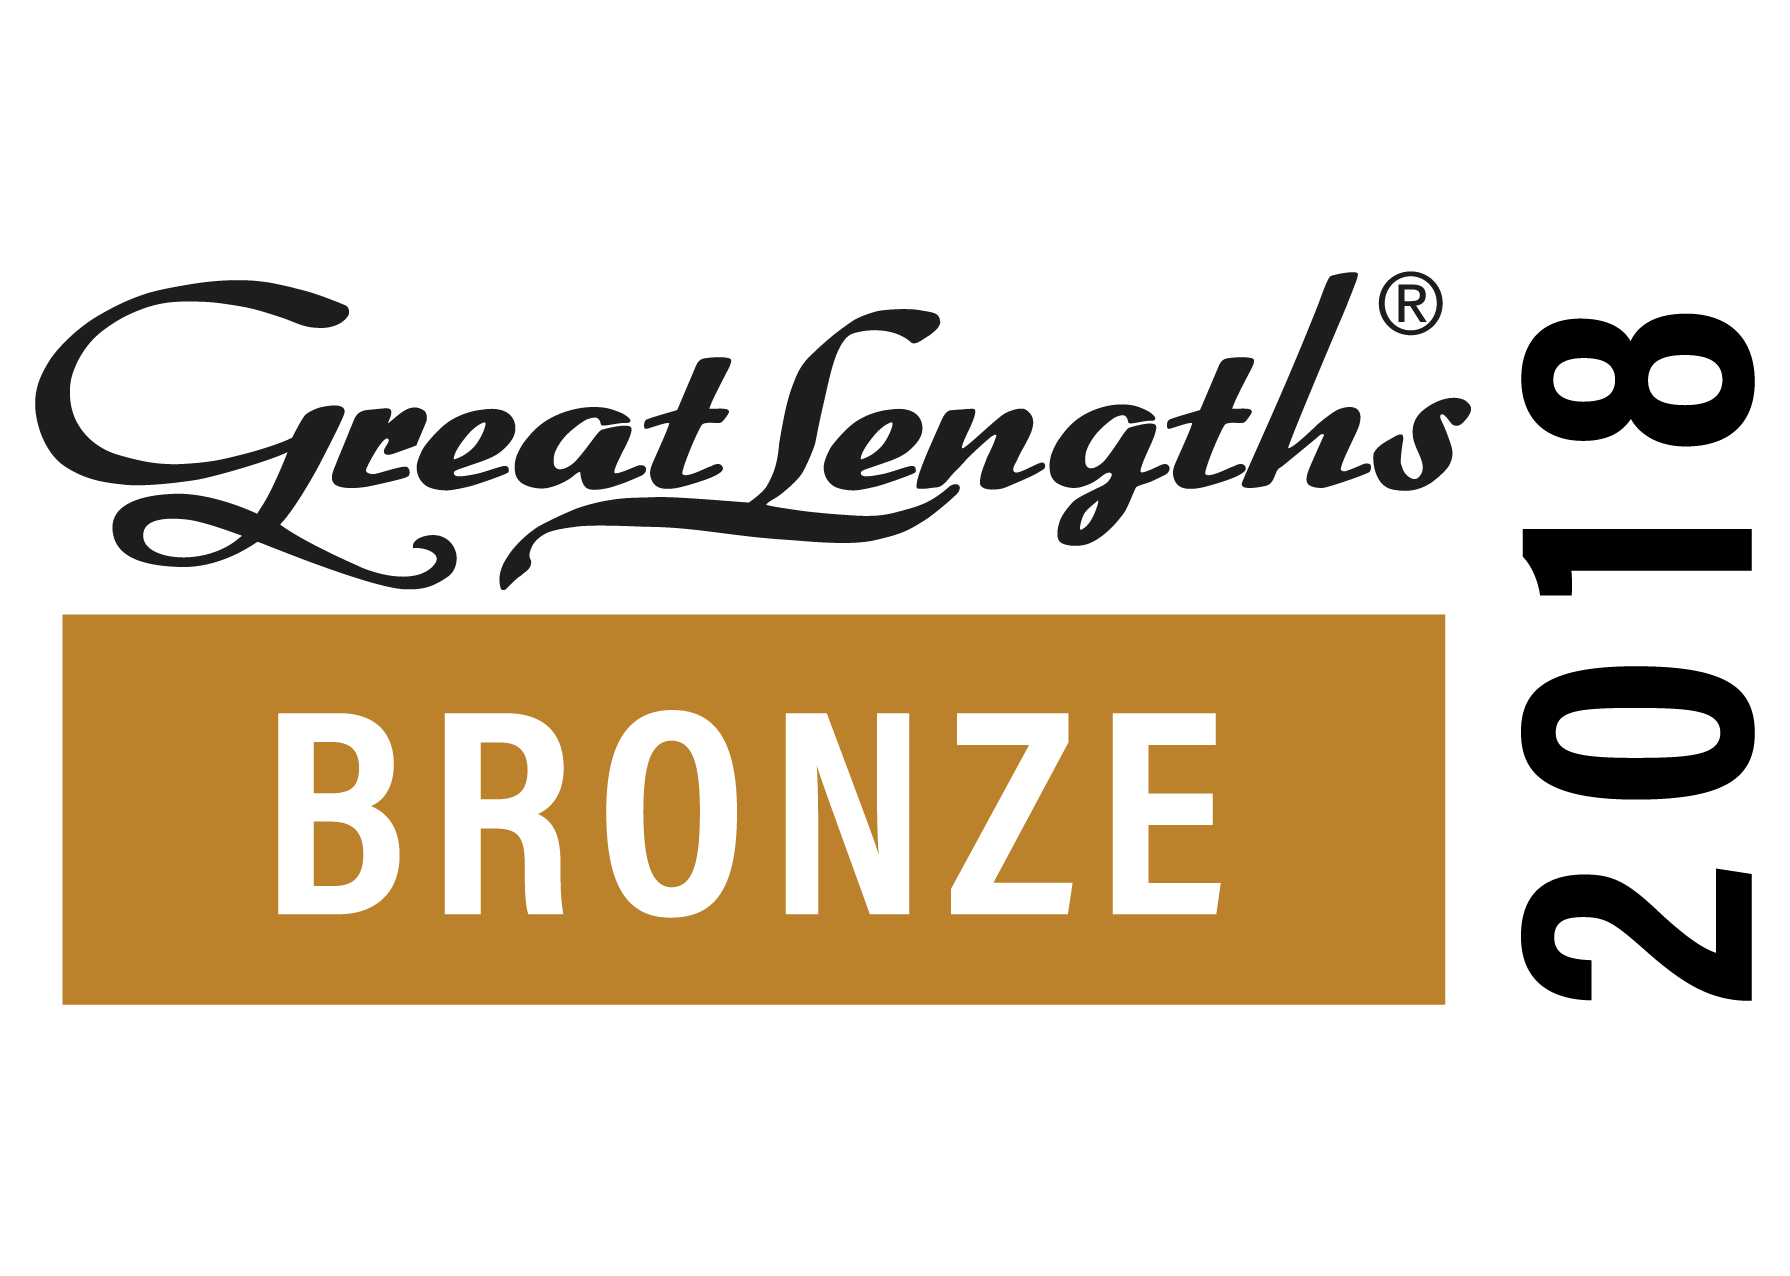 Greath Lenghts Bronze Status